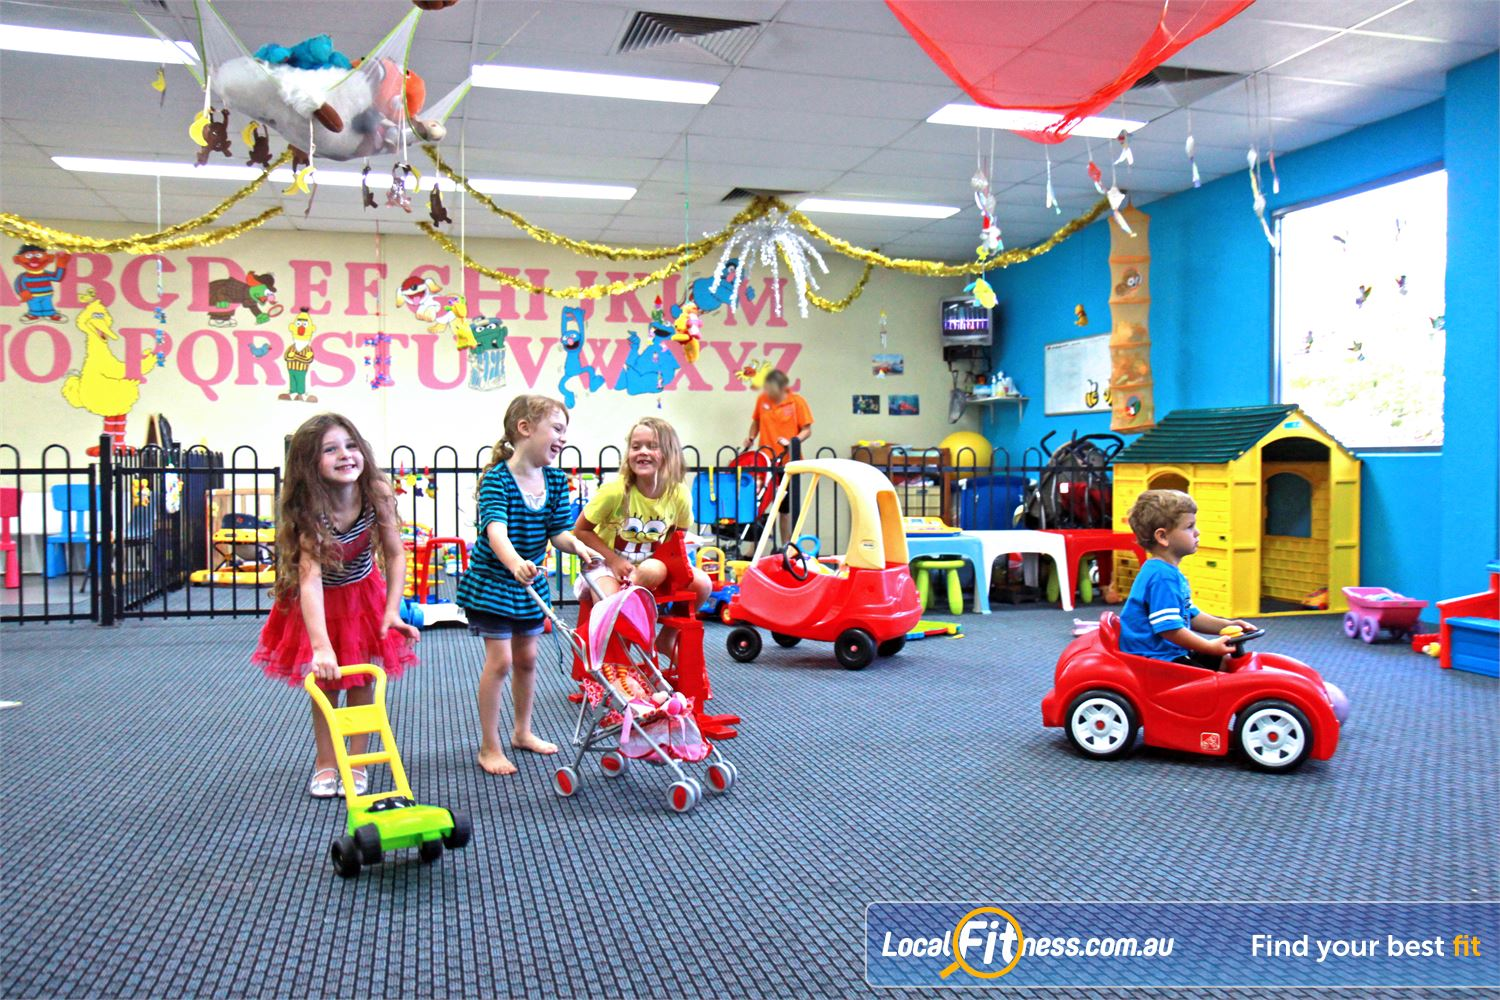 Goodlife Health Clubs Kingsway Near Pearsall Goodlife Madeley provides on-site child minding services.